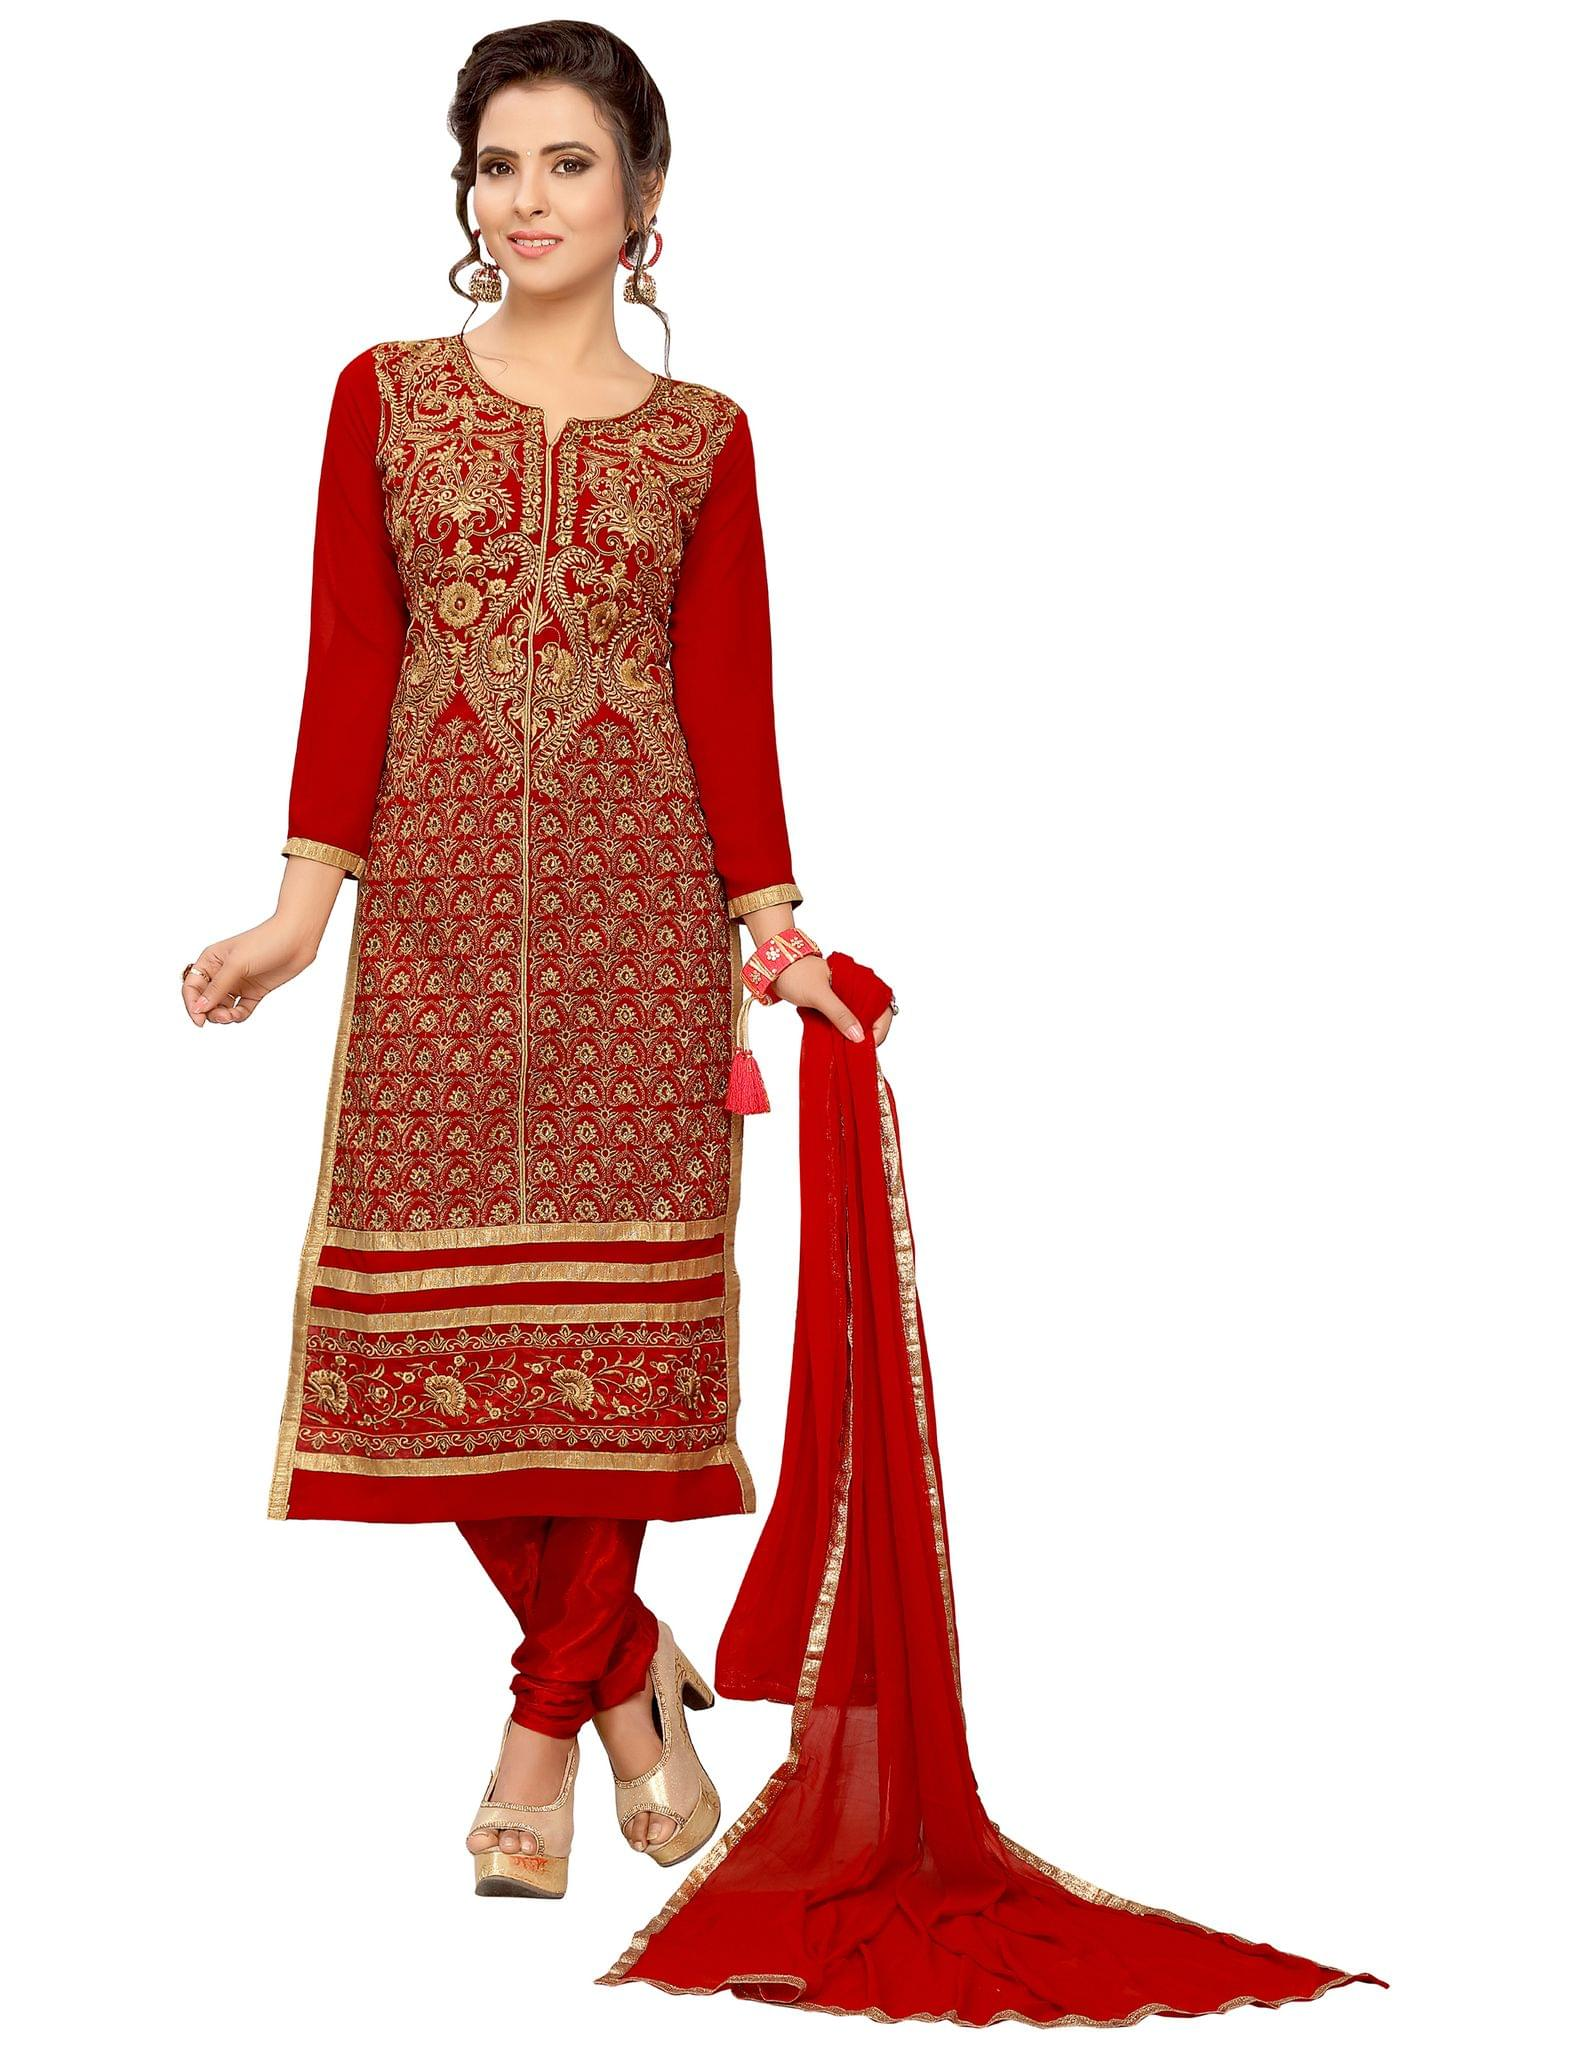 Minu Suits Salwar Suits Sets Geogette Red Unstitched Freesize